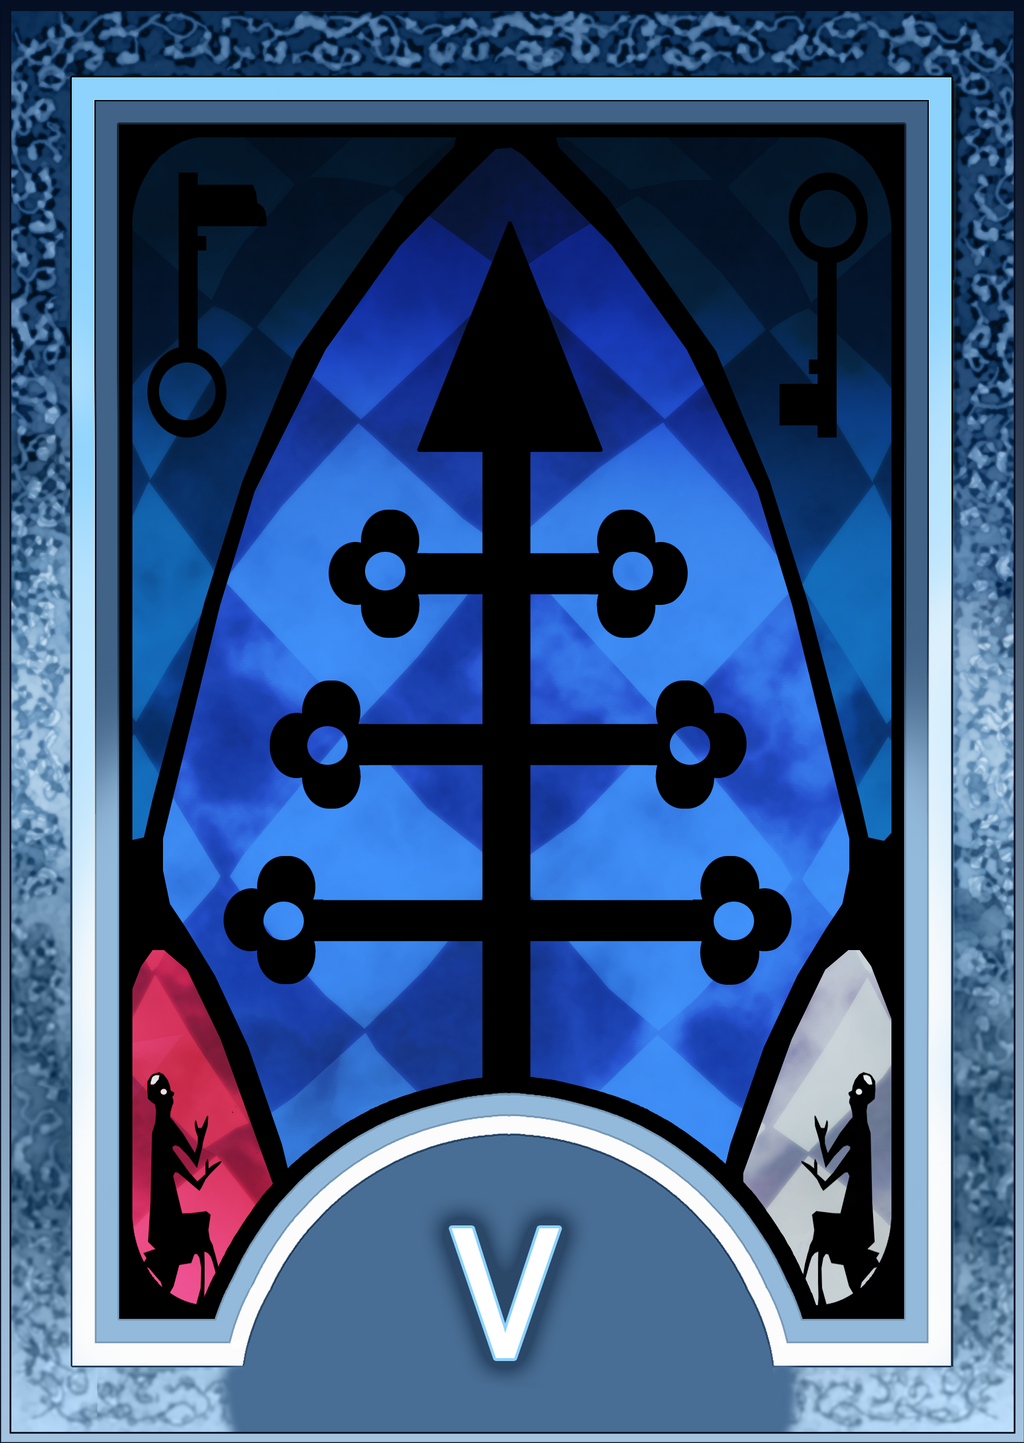 ♡ My homeboys and homegirls ♡ Persona_3_4_tarot_card_deck_hr___hierophant_arcana_by_enetirnel-d6xr7ic